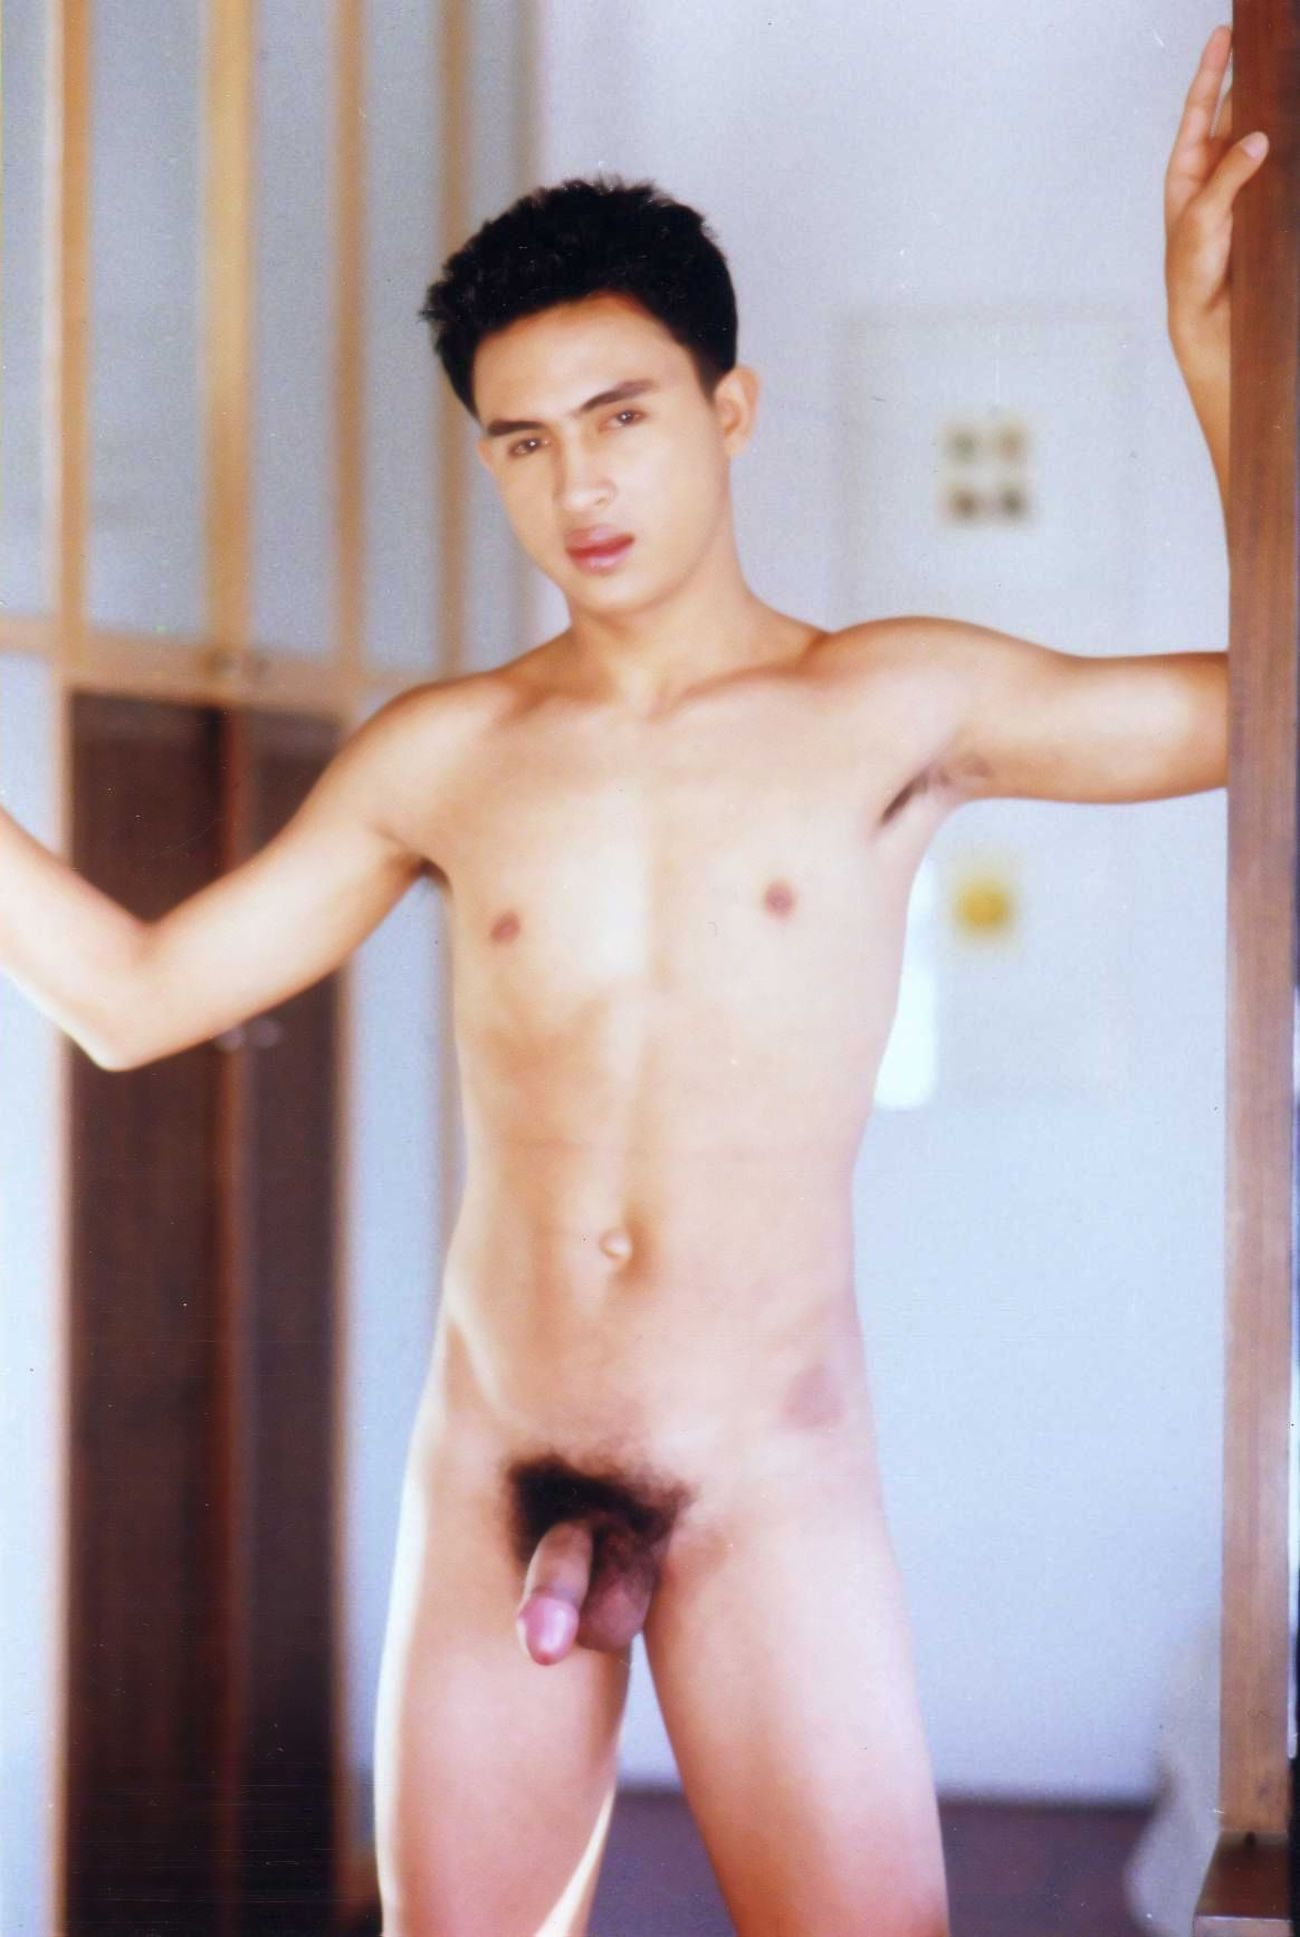 escort girl asian gay boy porn